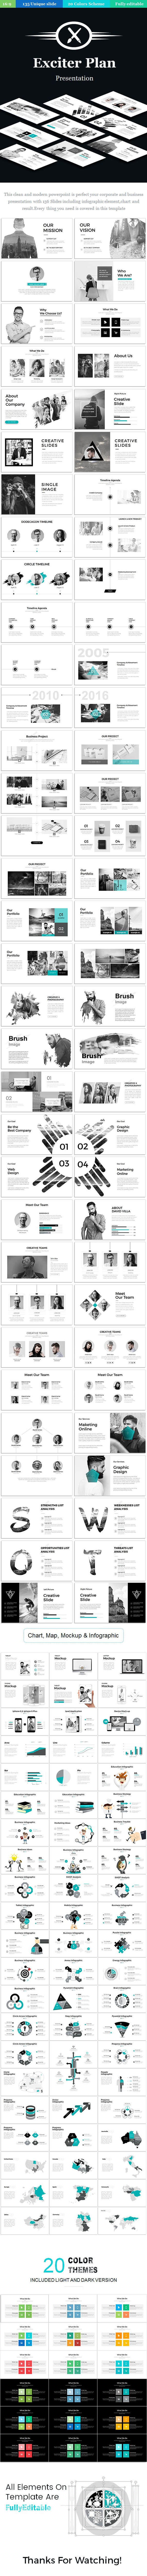 Exciter Plan Keynote Template. Download here: http://graphicriver.net/item/exciter-plan-keynote-template/15907978?ref=ksioks